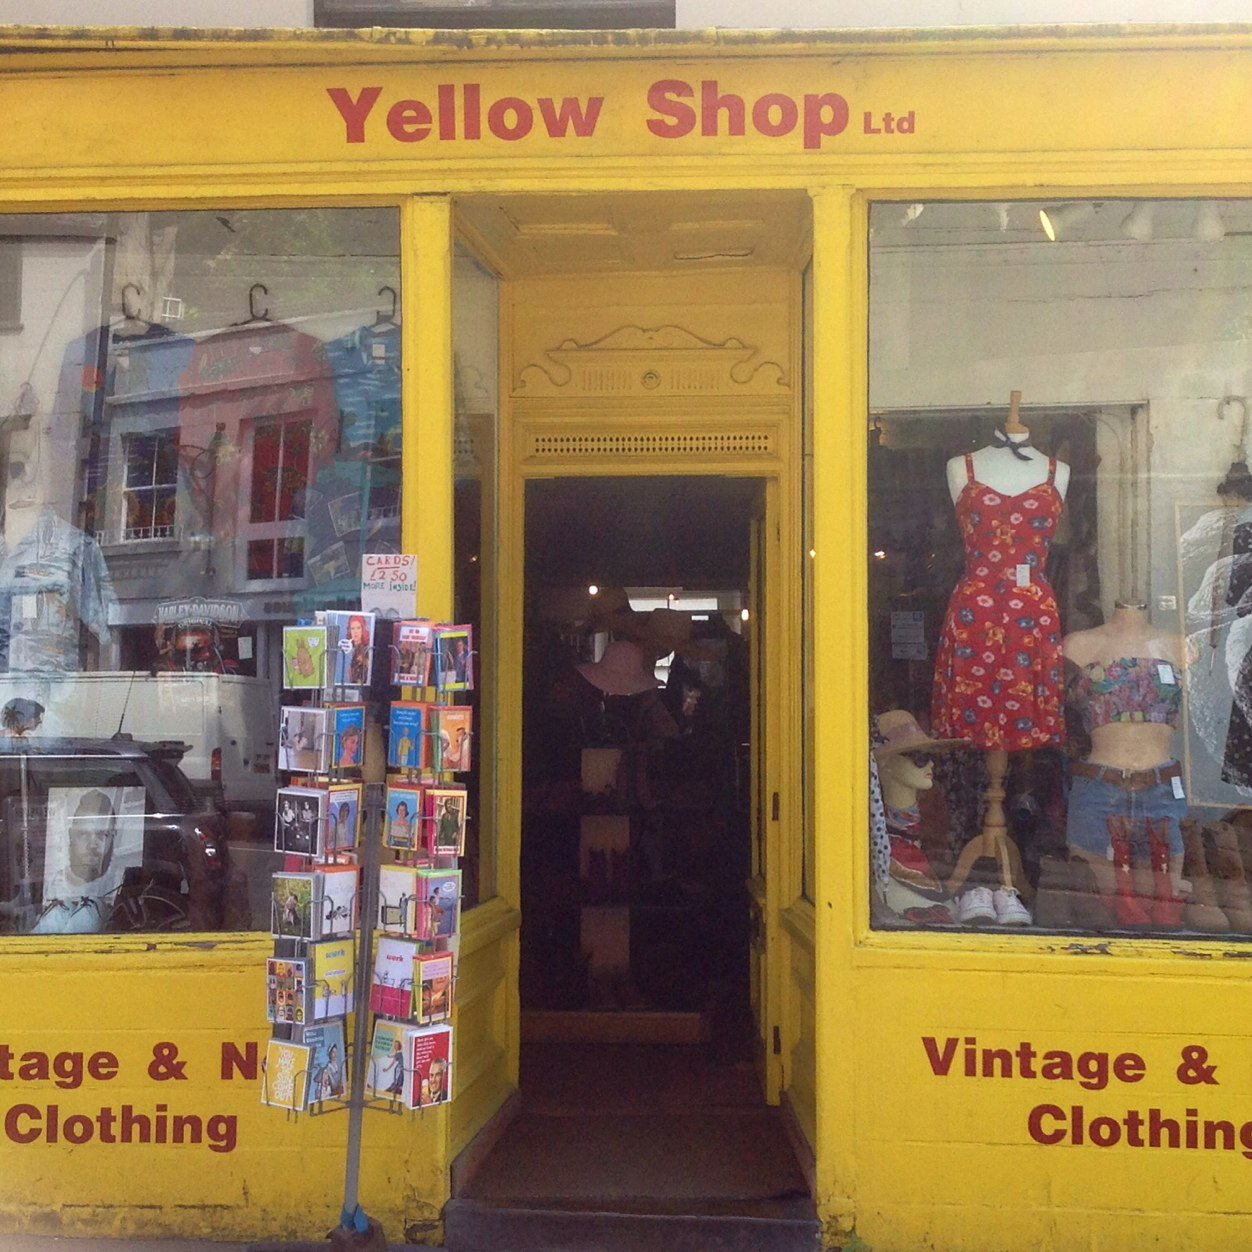 Yellow Shop Yellow Shop Bath Yellowshopbath Twitter